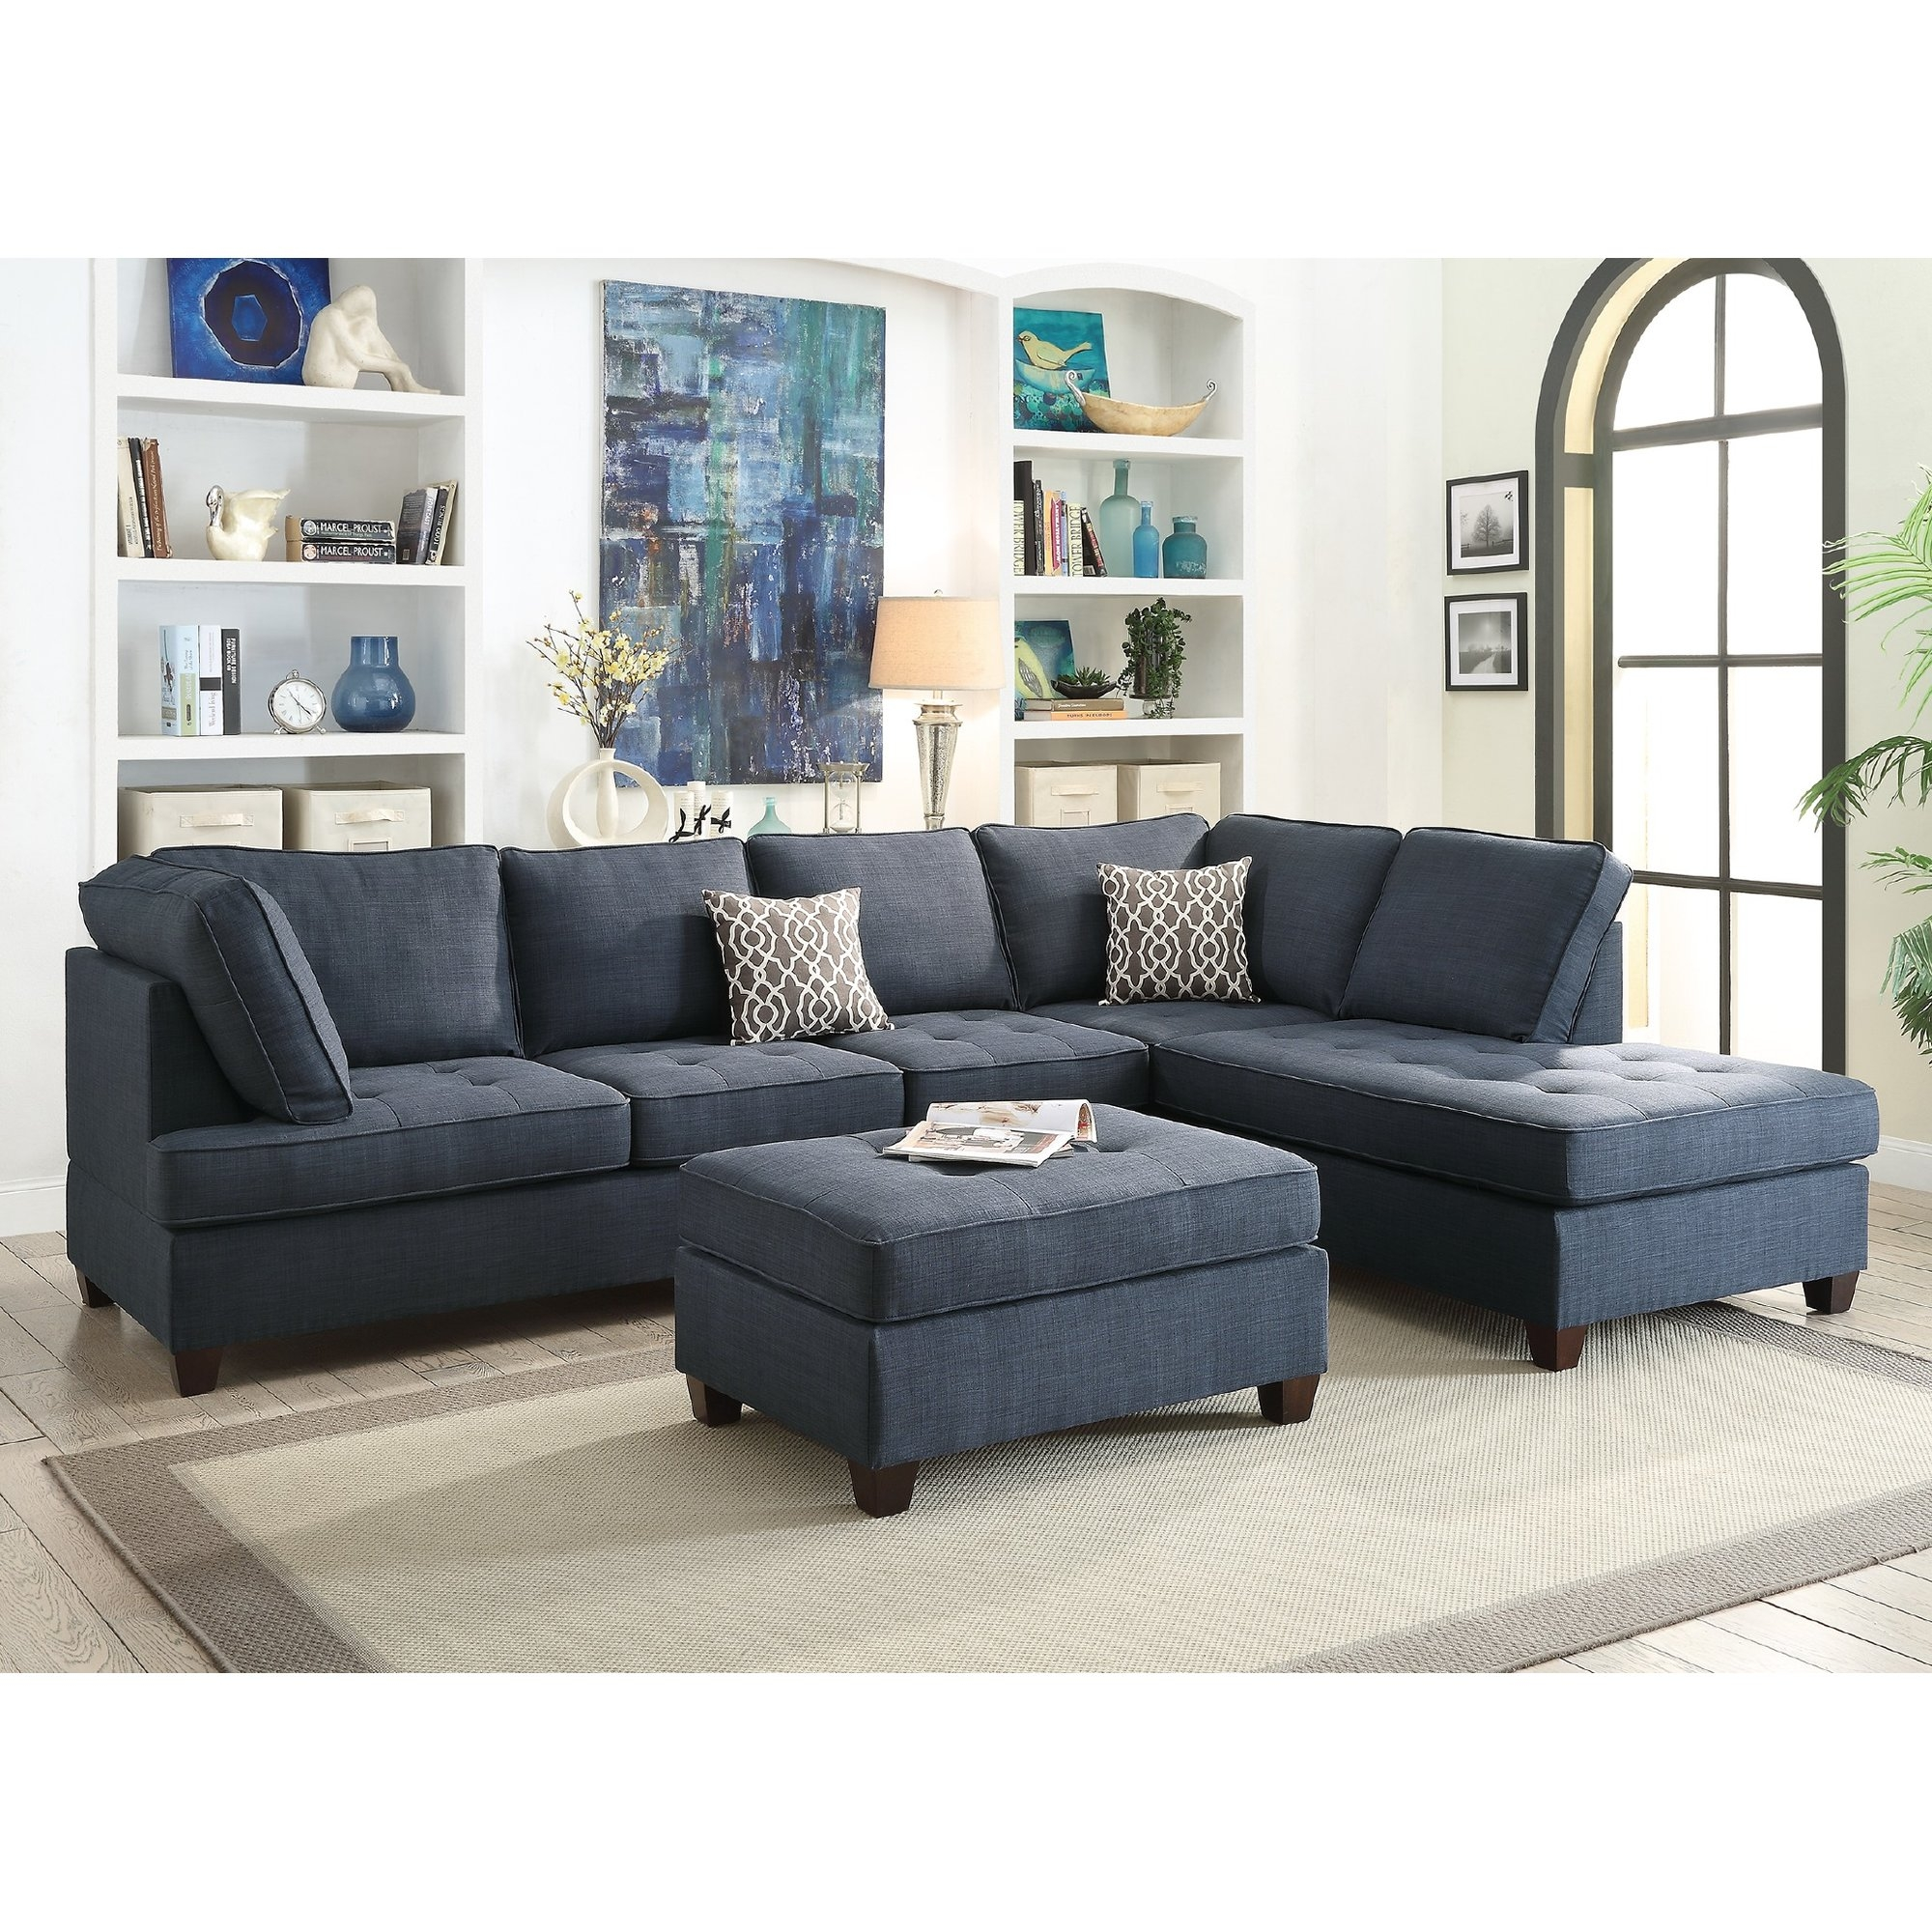 45 Degree Sectional Sofa Best House Interior Today